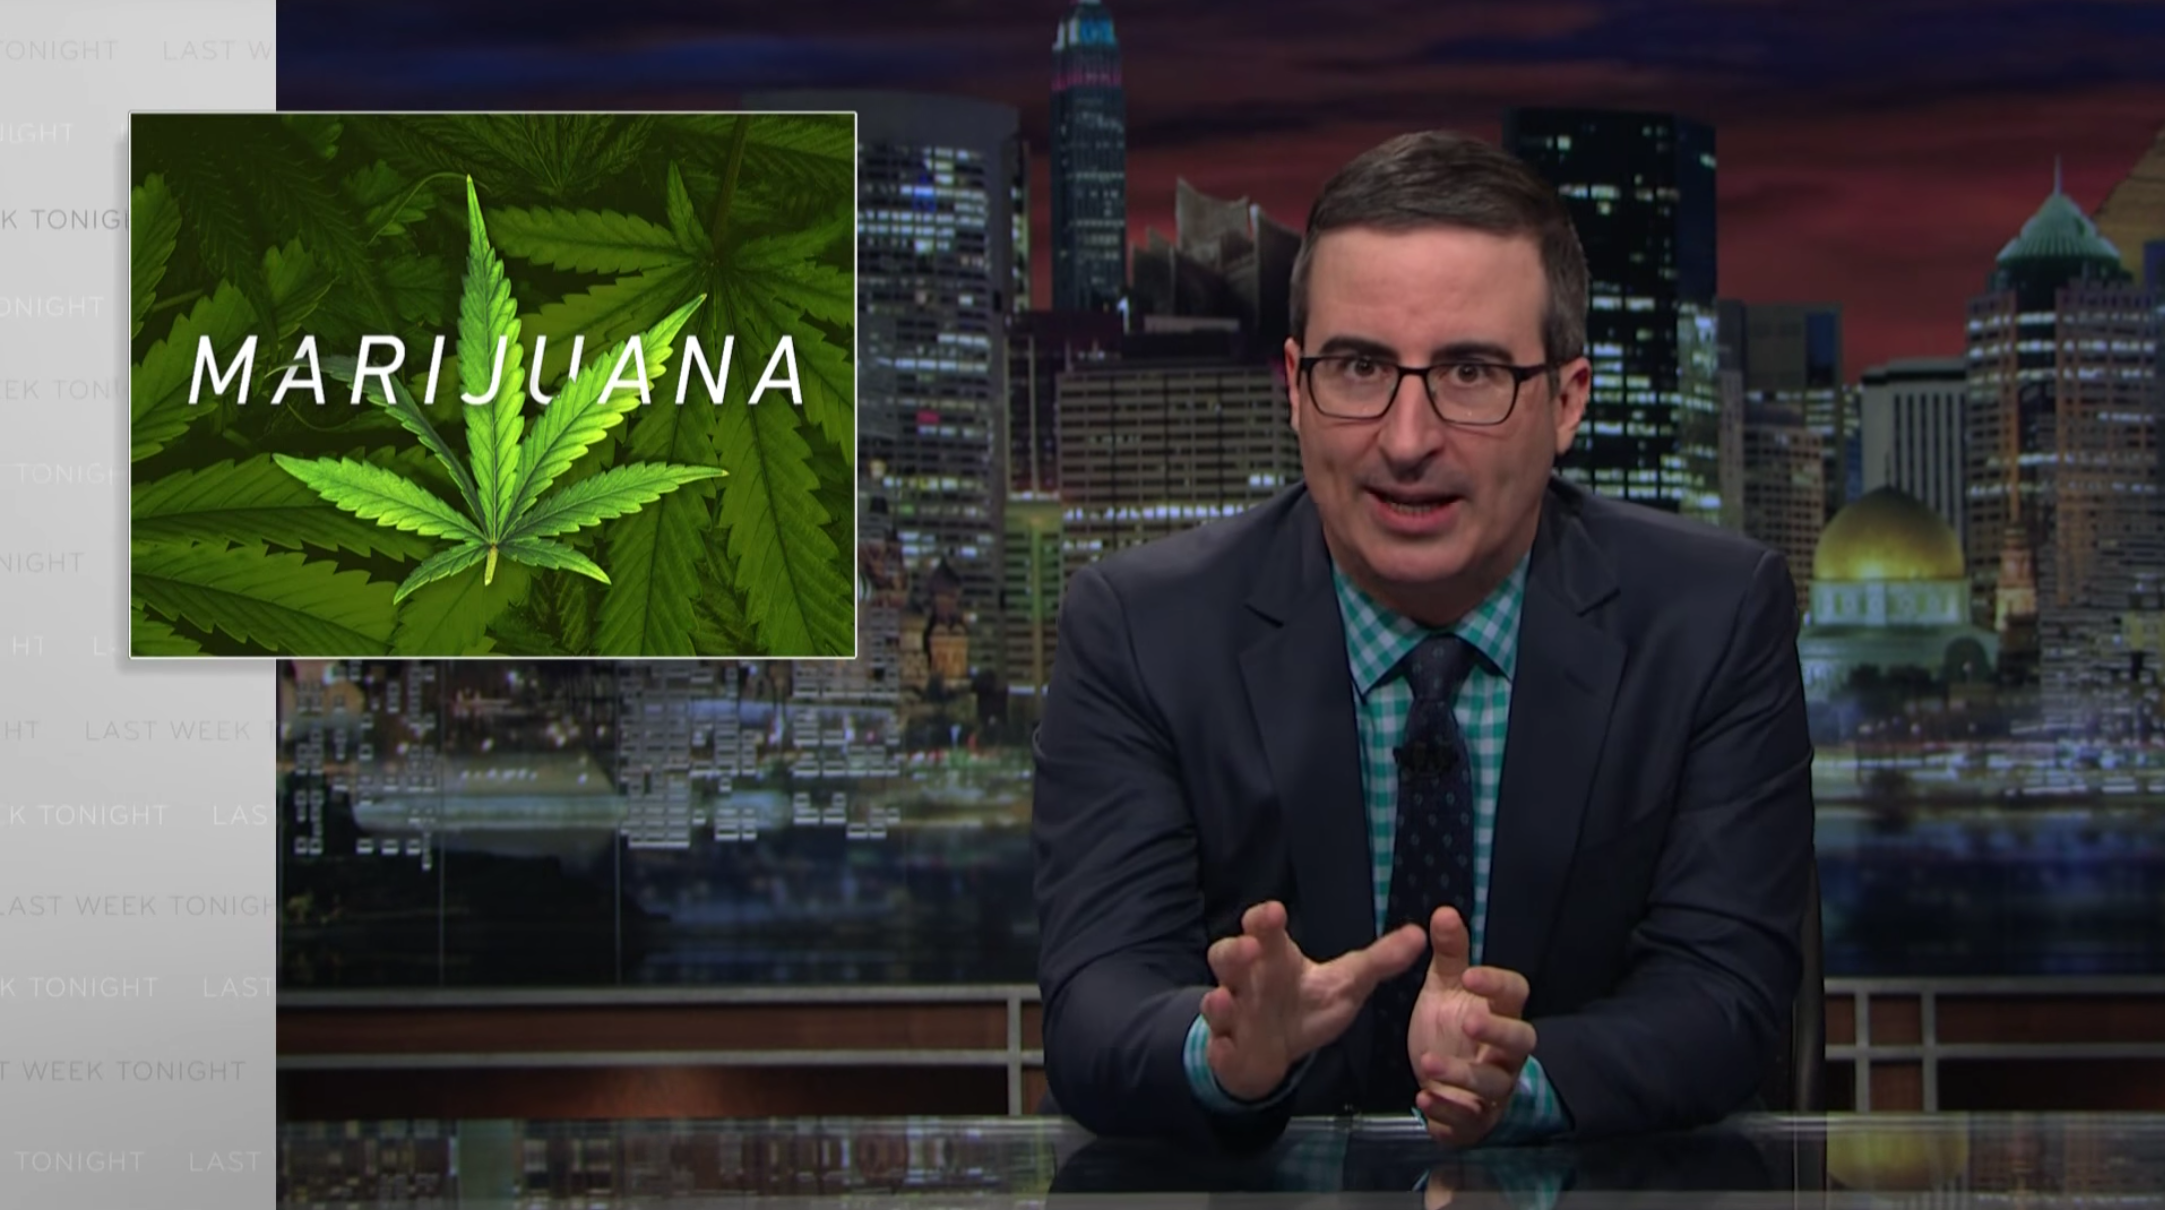 Last Week Tonight: John Oliver Rips on Federal Marijuana Rules